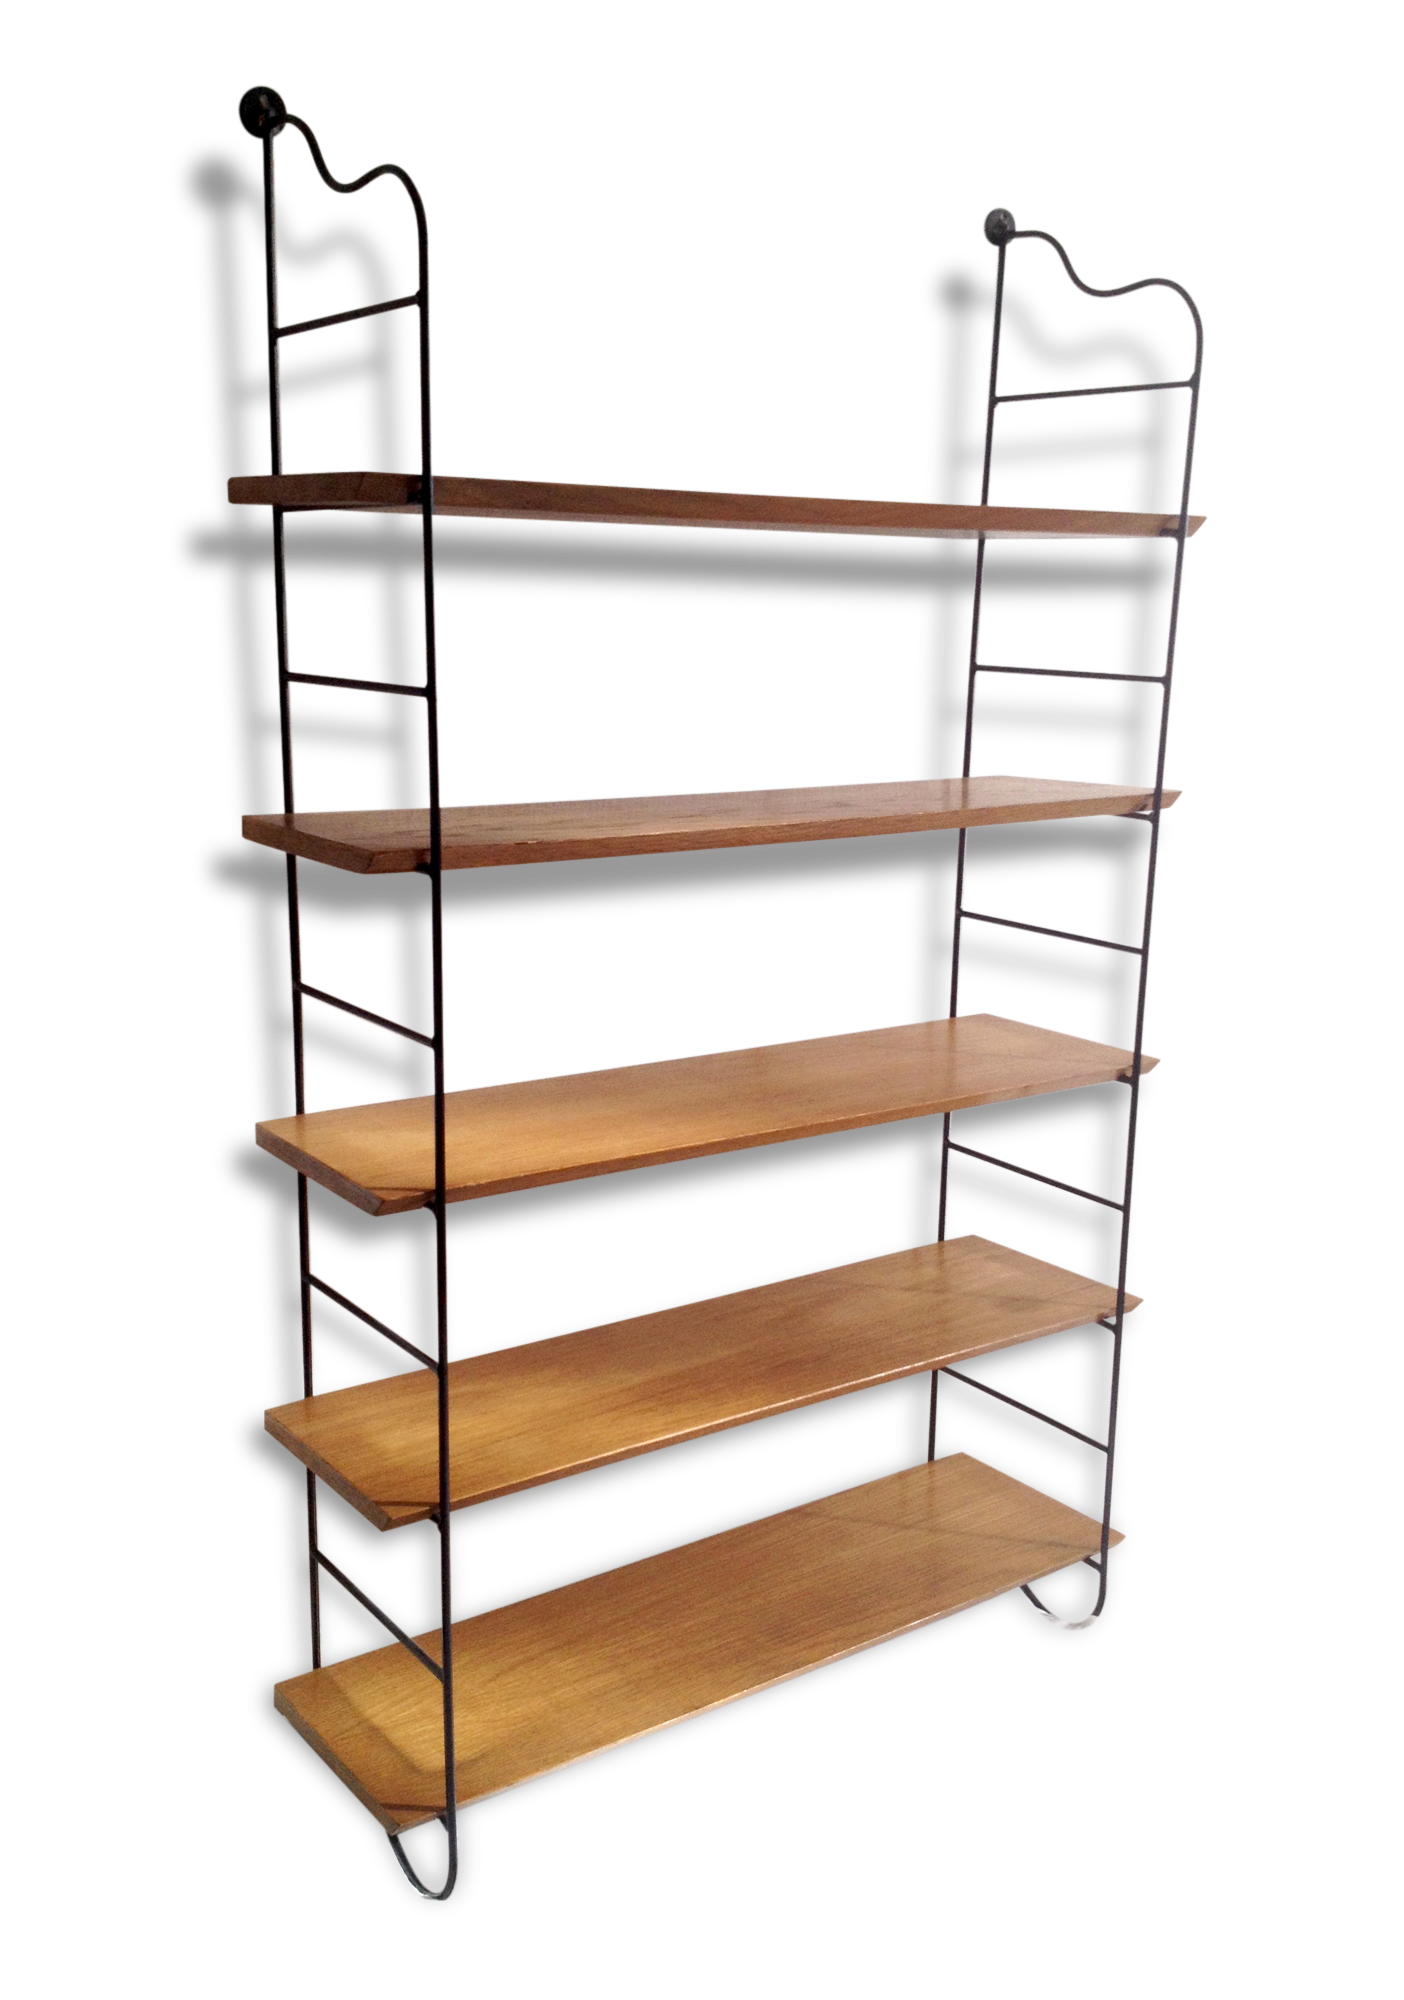 etagere design scandinave excellent tagre design scandinave en bois en verre with etagere. Black Bedroom Furniture Sets. Home Design Ideas